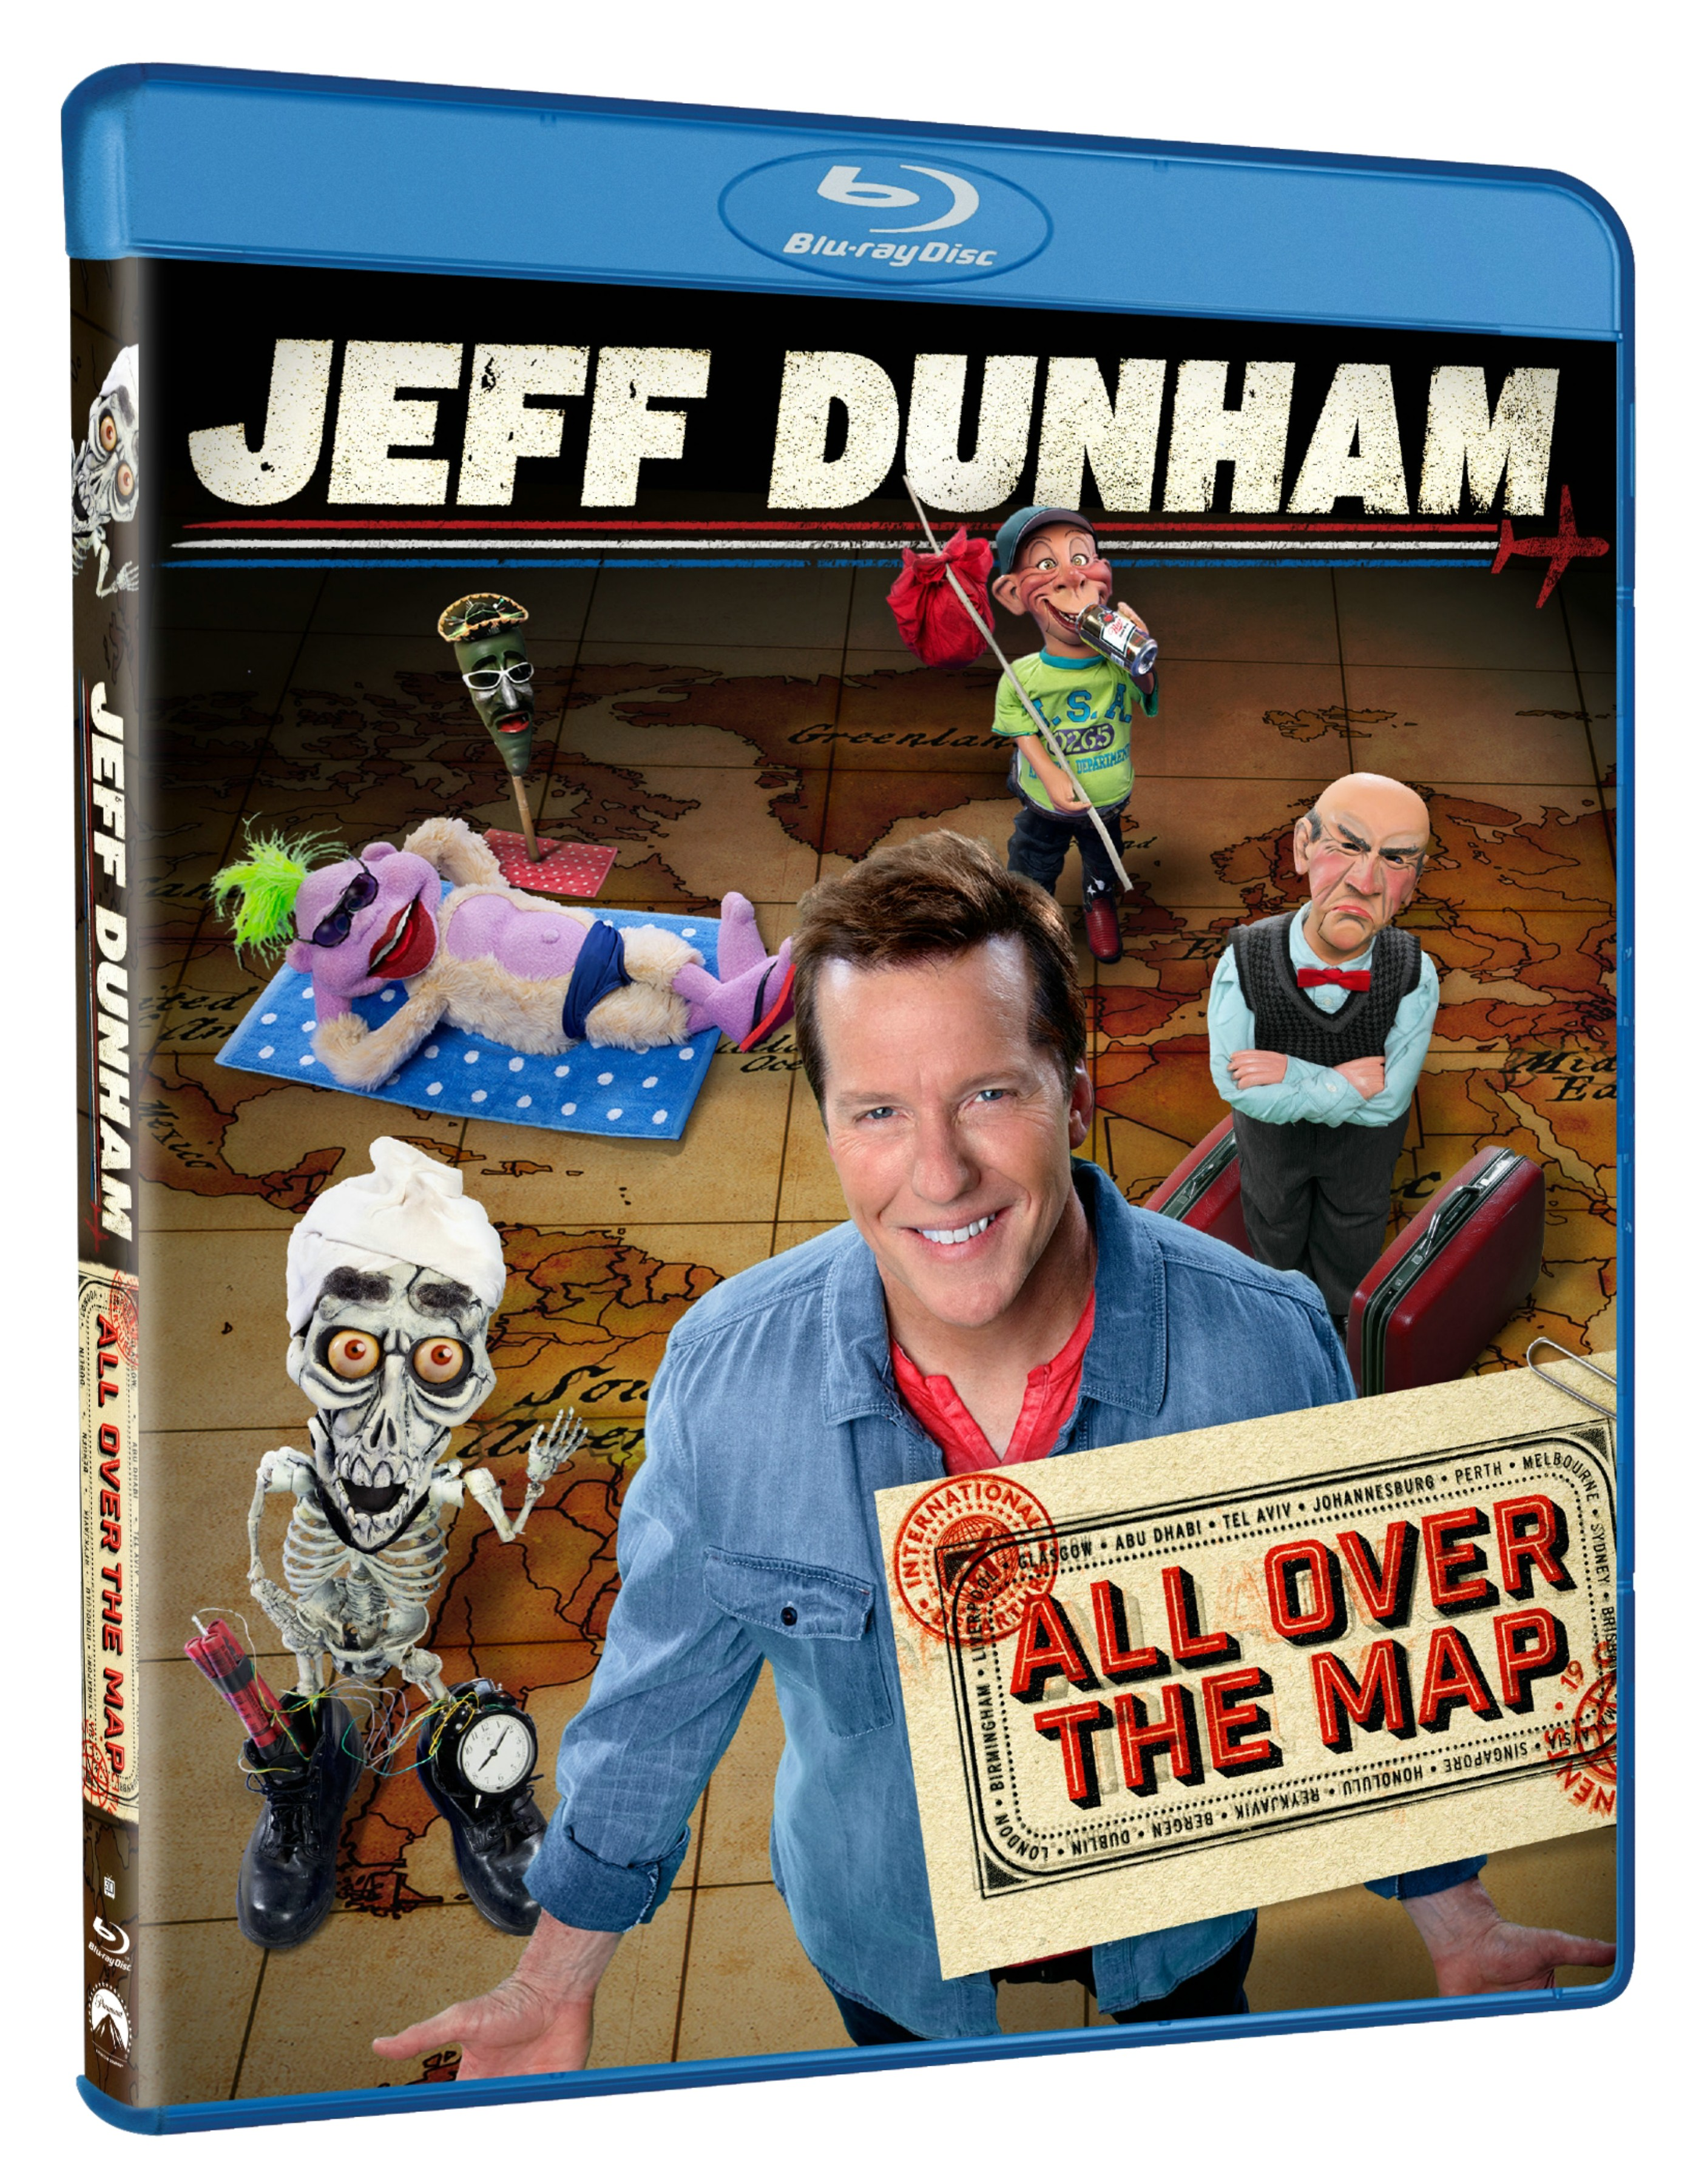 Jeff Dunham All Over The Map Blu-ray Review